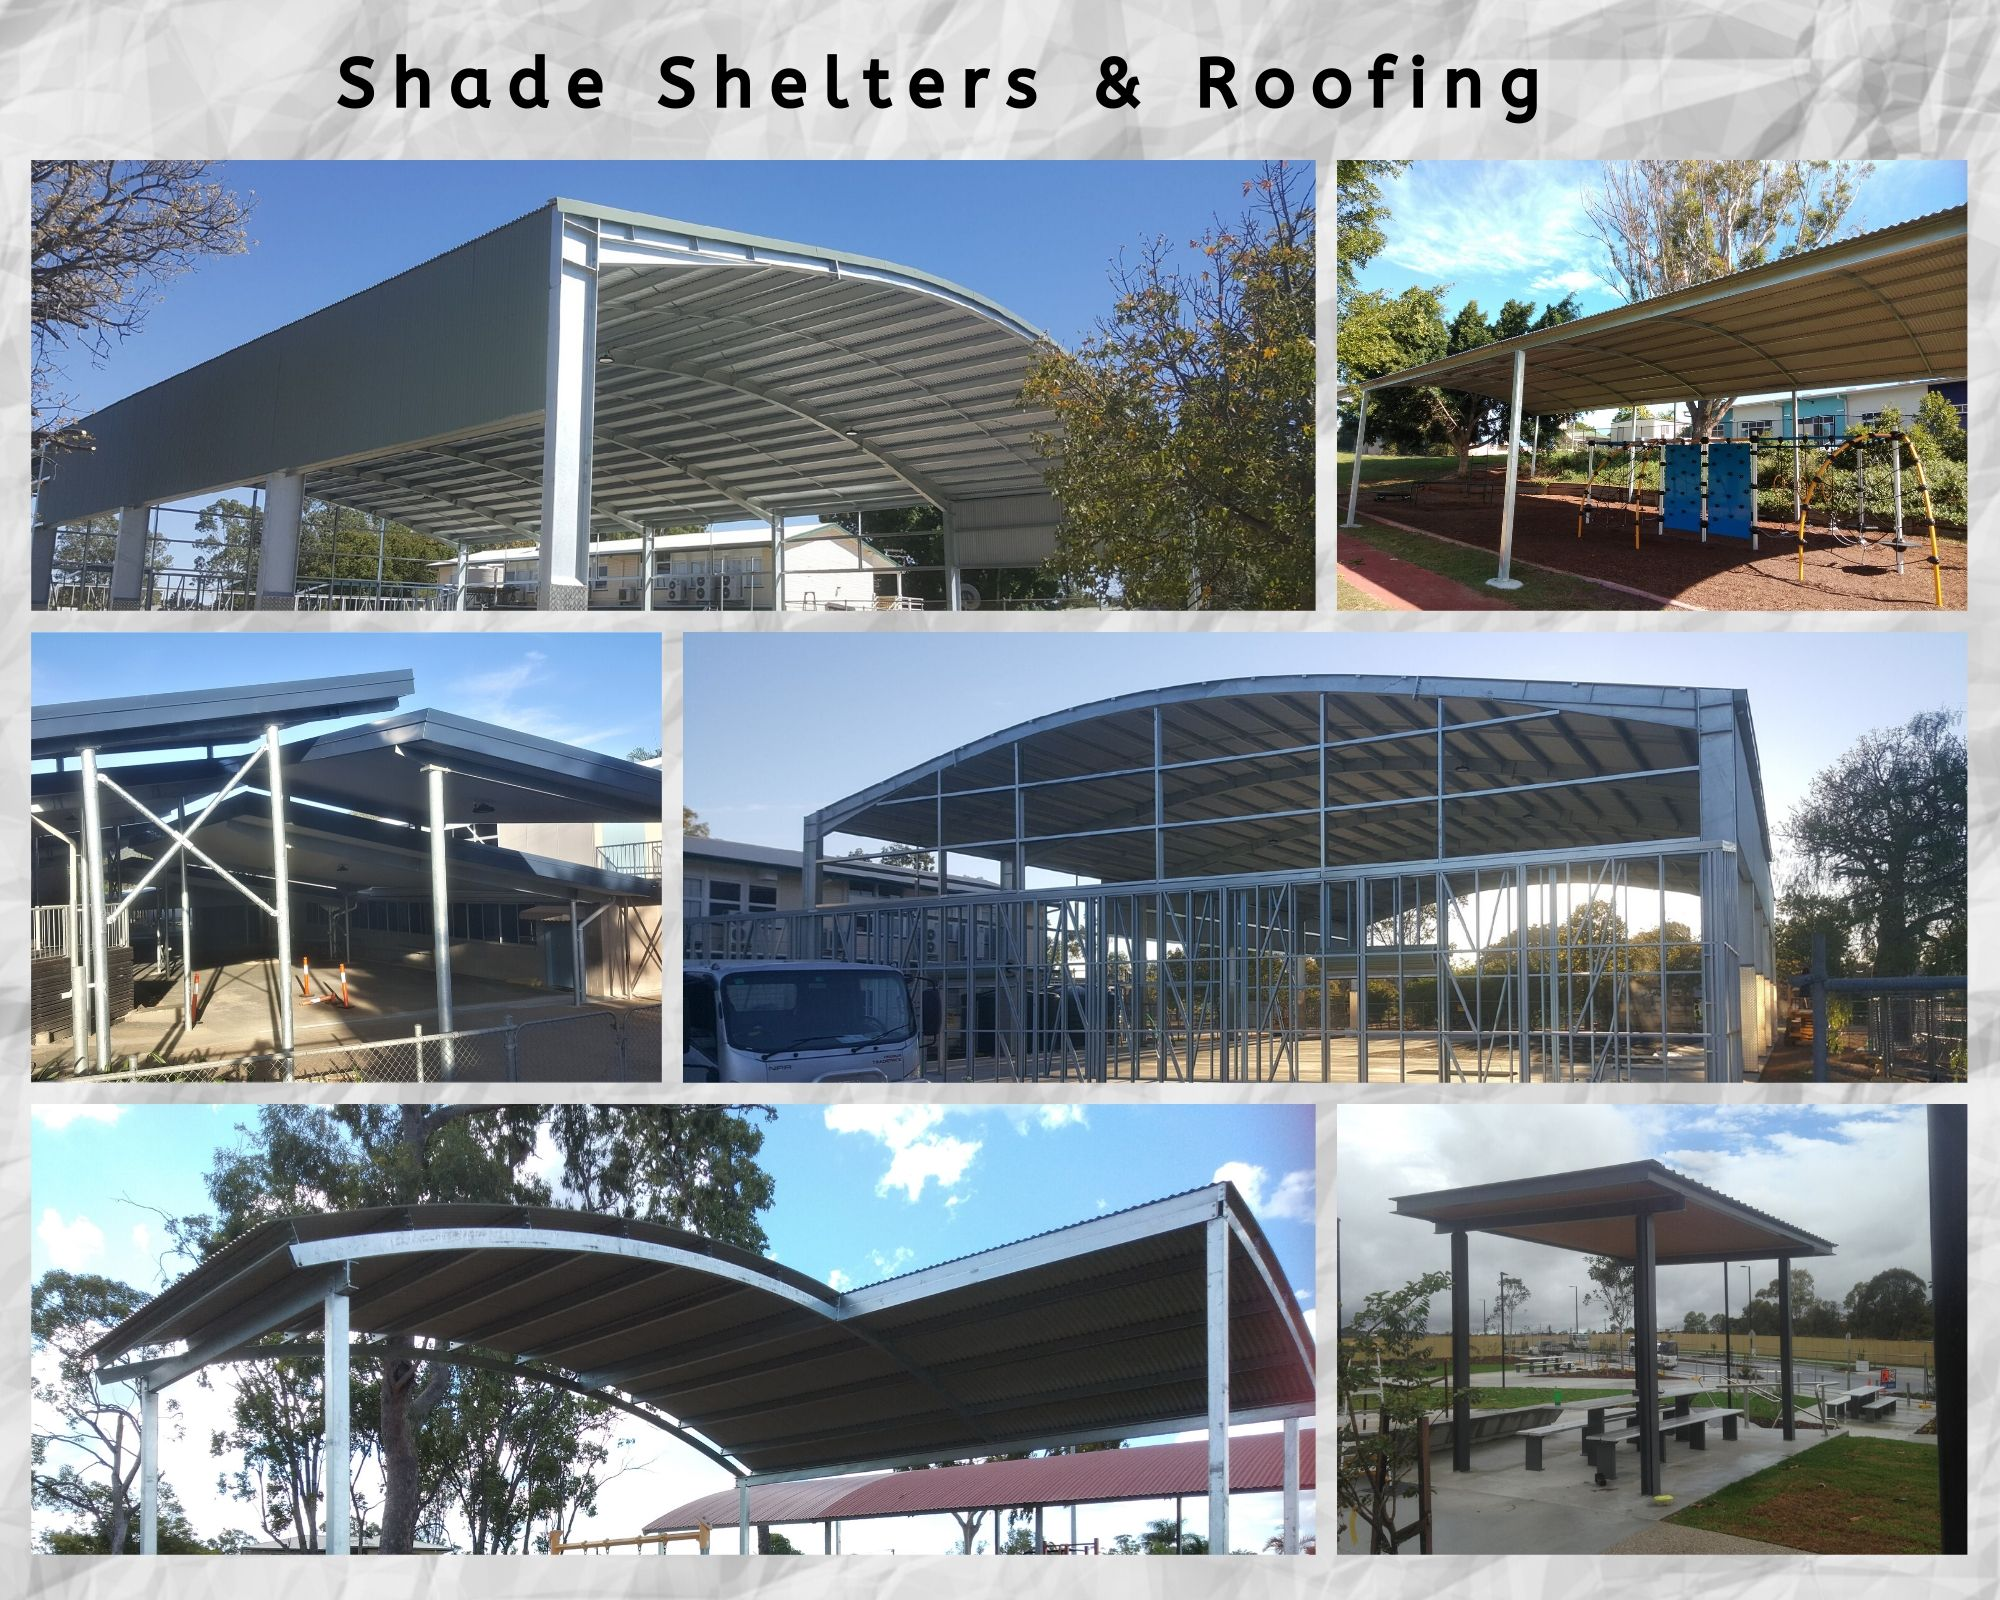 Shade Shelters & Roofing